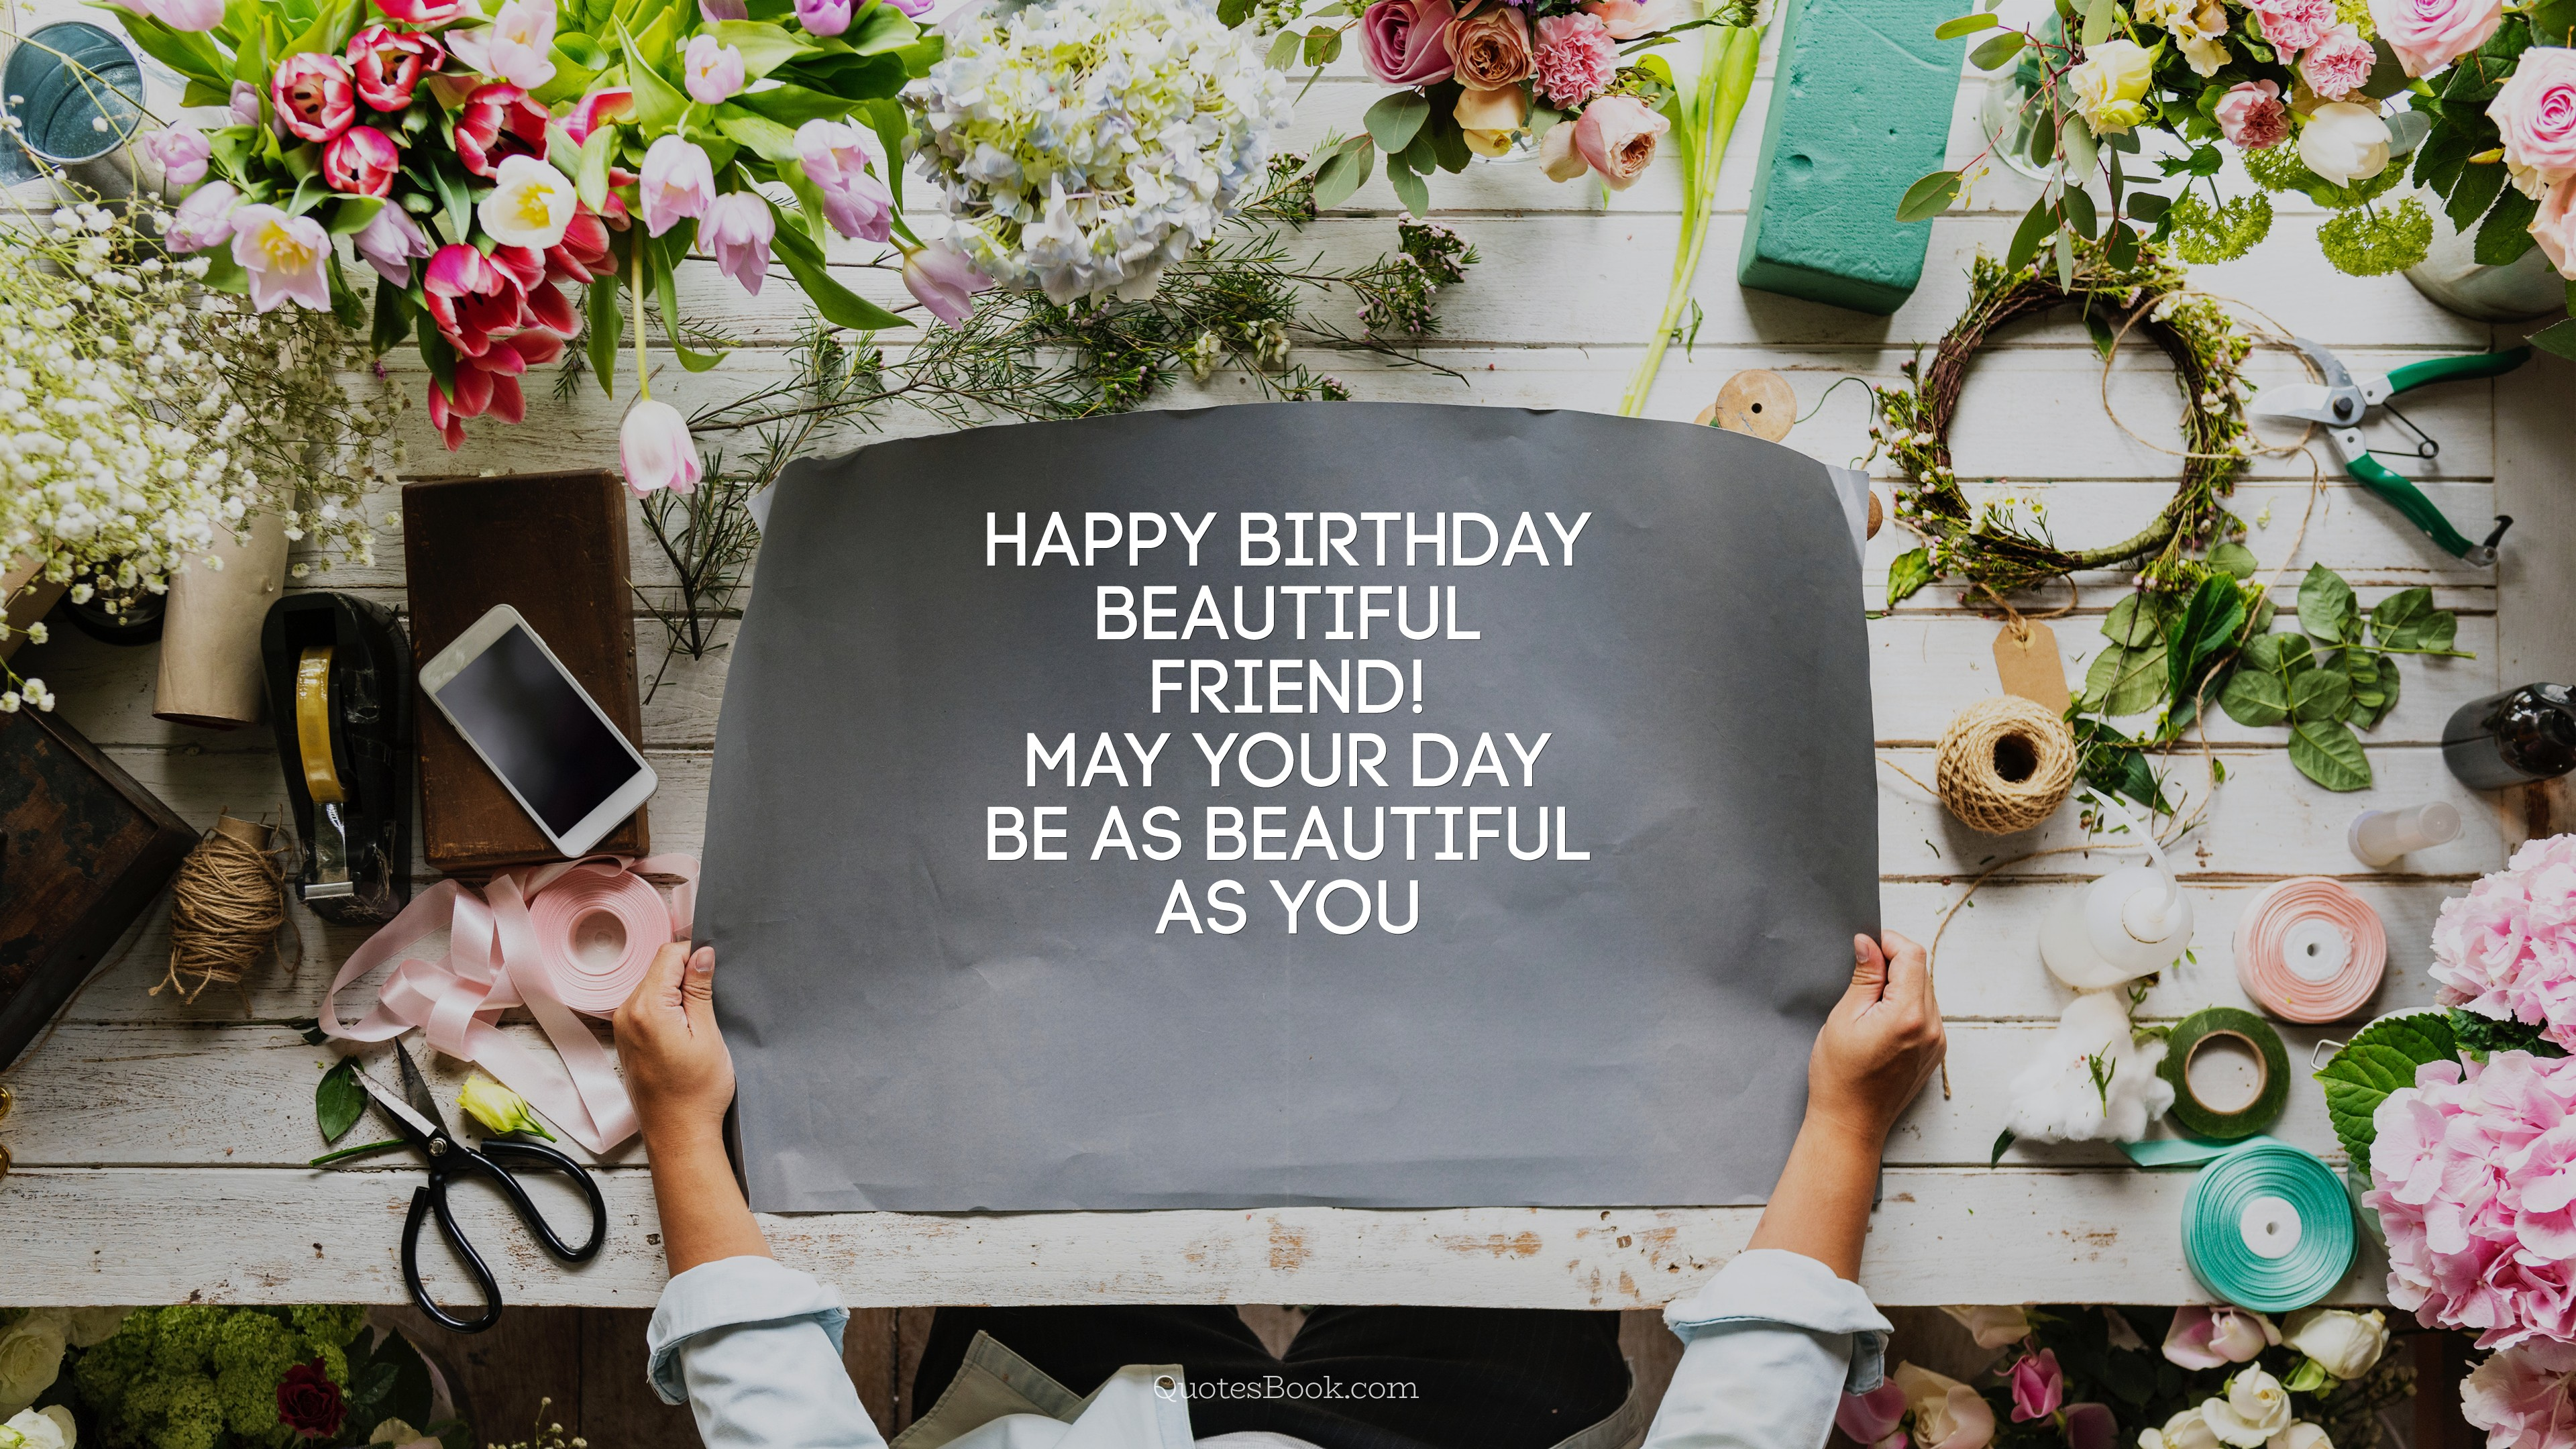 Happy Birthday Beautiful Friend May Your Day Be As Beautiful As You